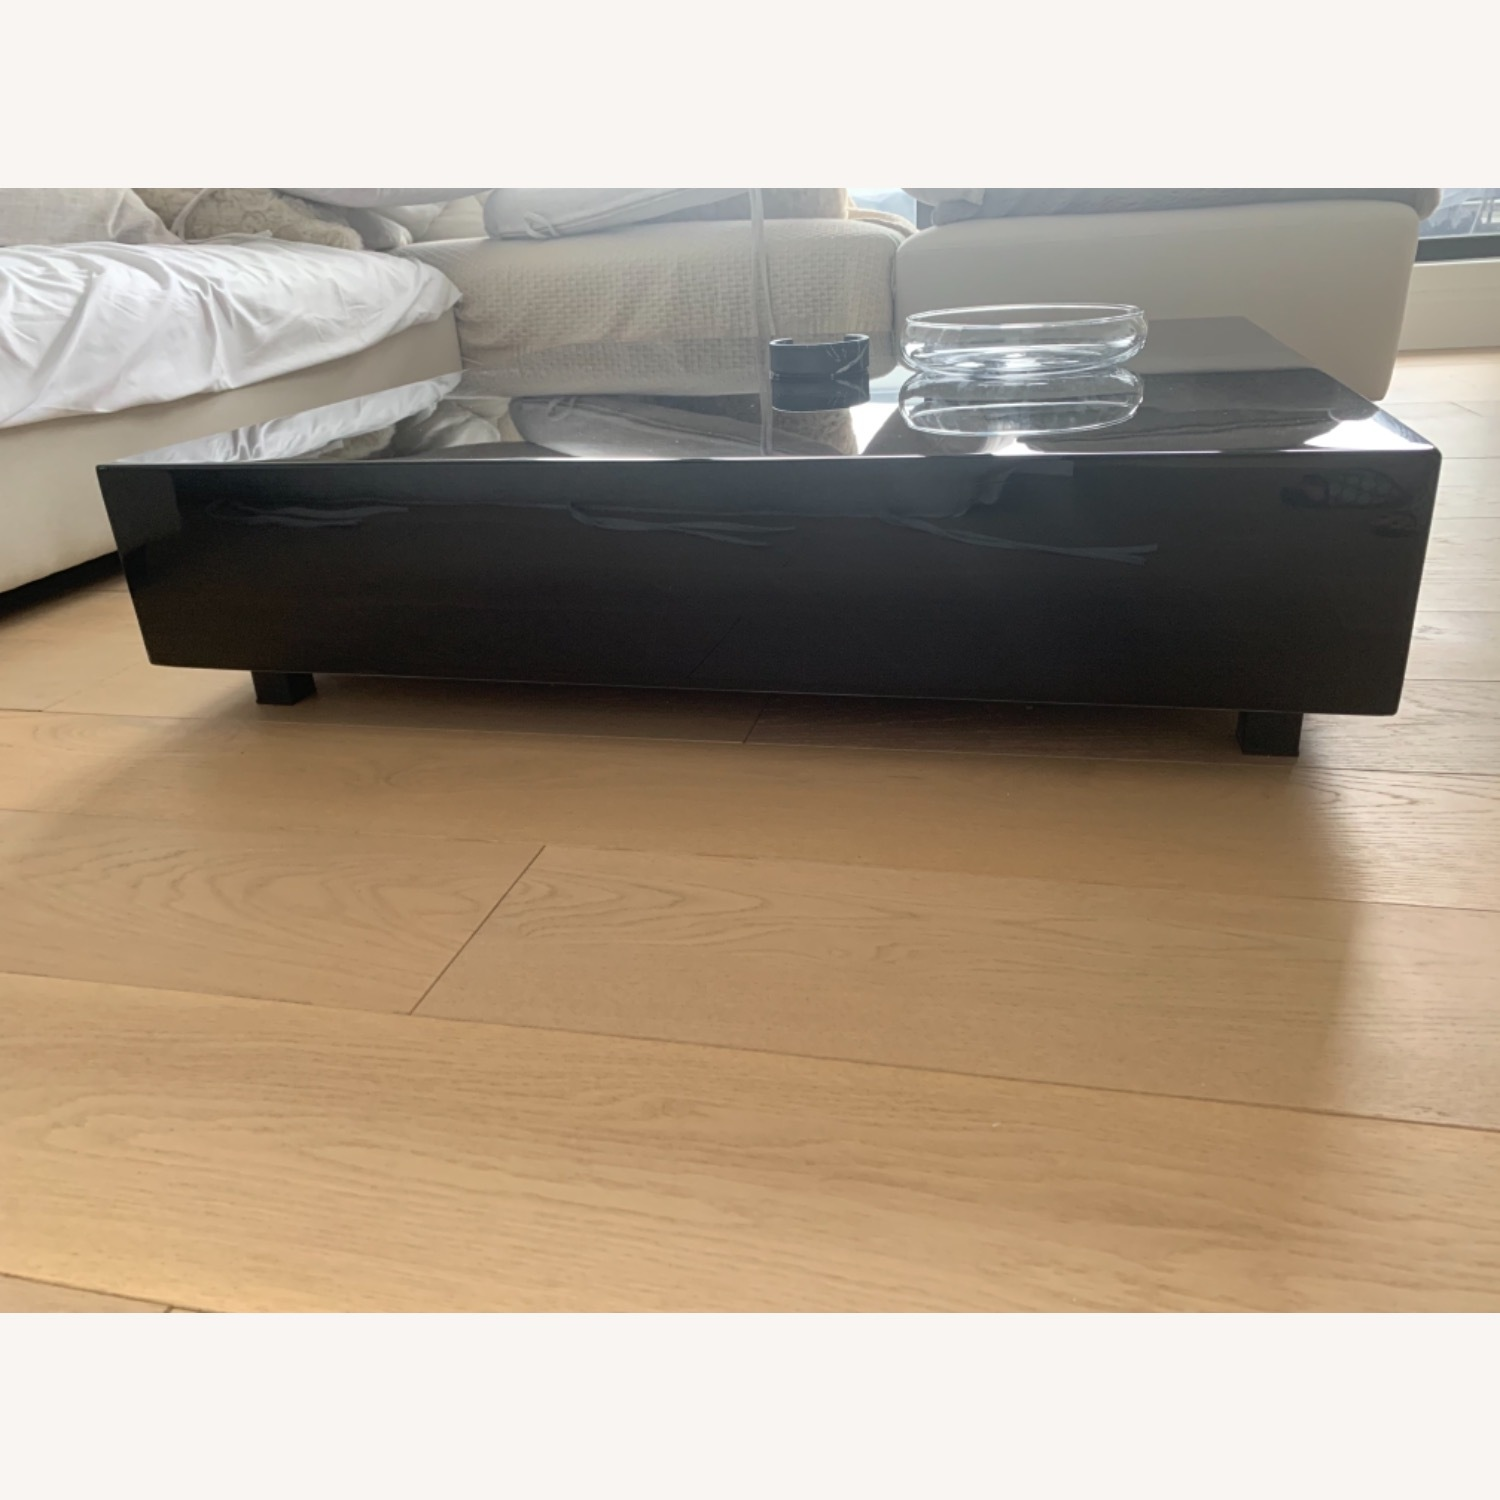 Rove Concept Black Marble Glossy Coffee Table - image-5